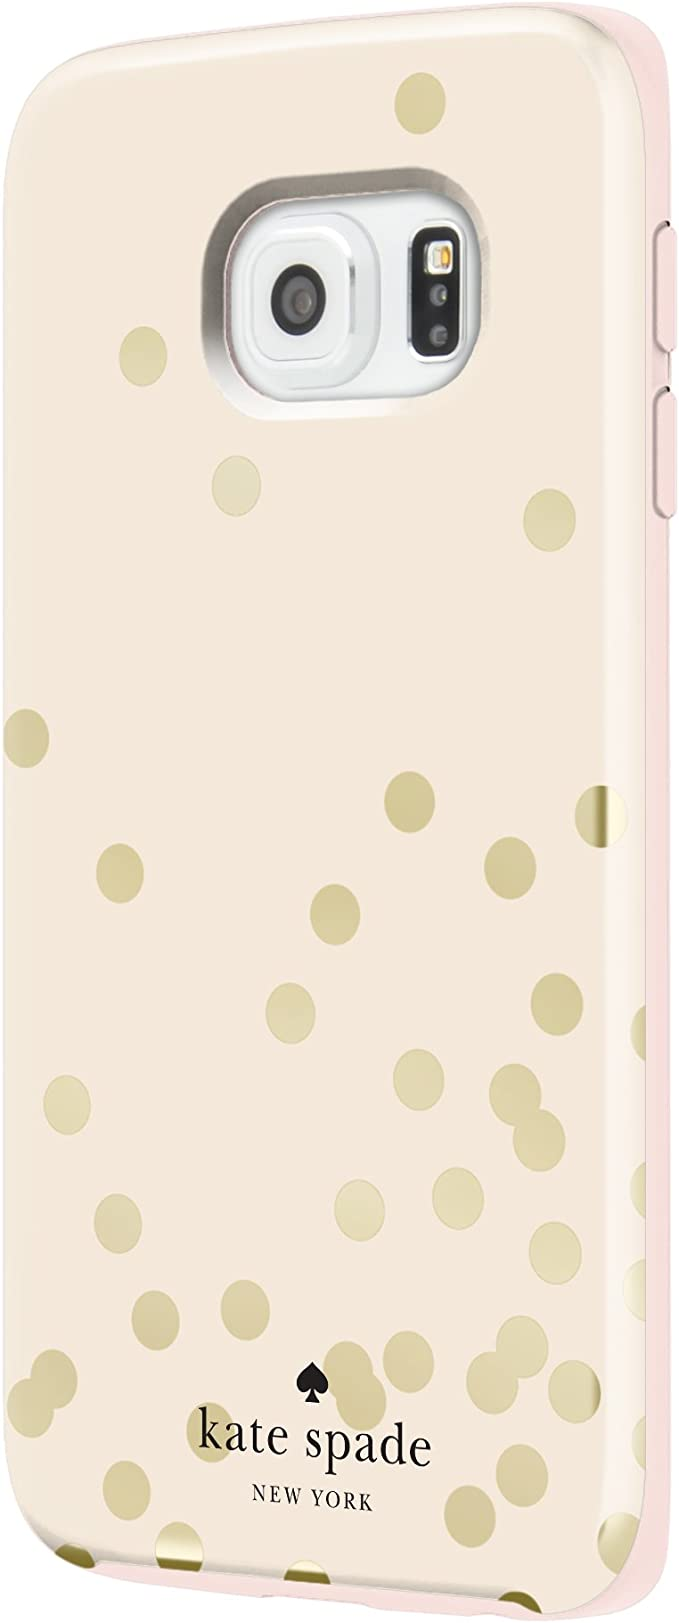 kate spade new york Samsung Galaxy S6 edge [Shock Absorbing] Cover ...